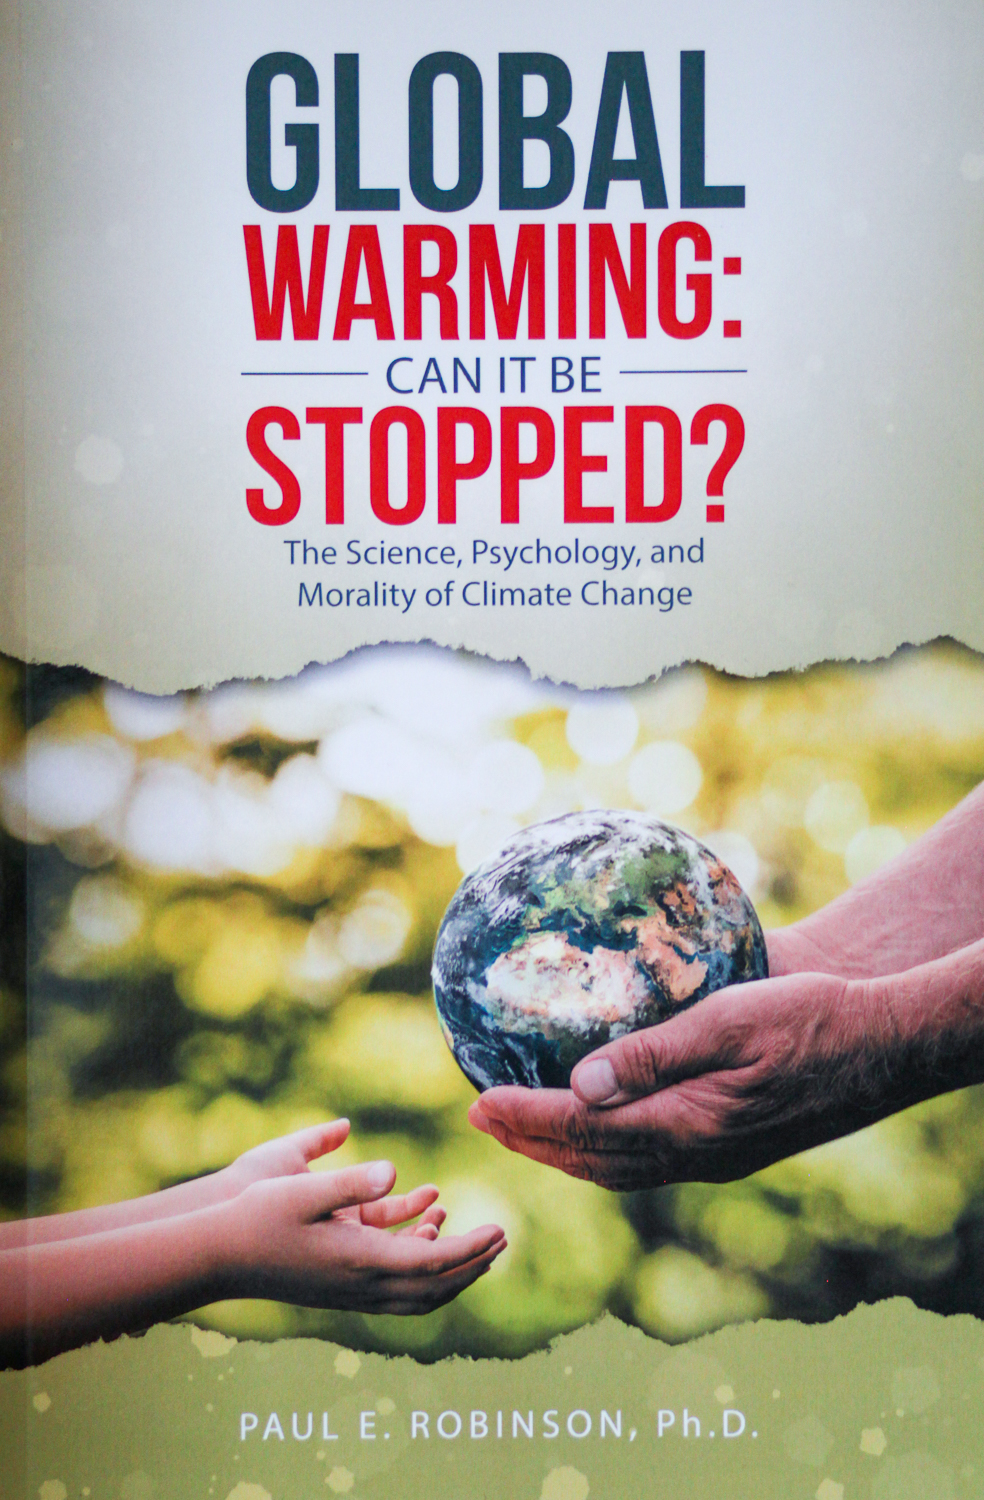 Global Warming: Can It Be Stopped?: The Science, Psychology, and Morality of Climate Change